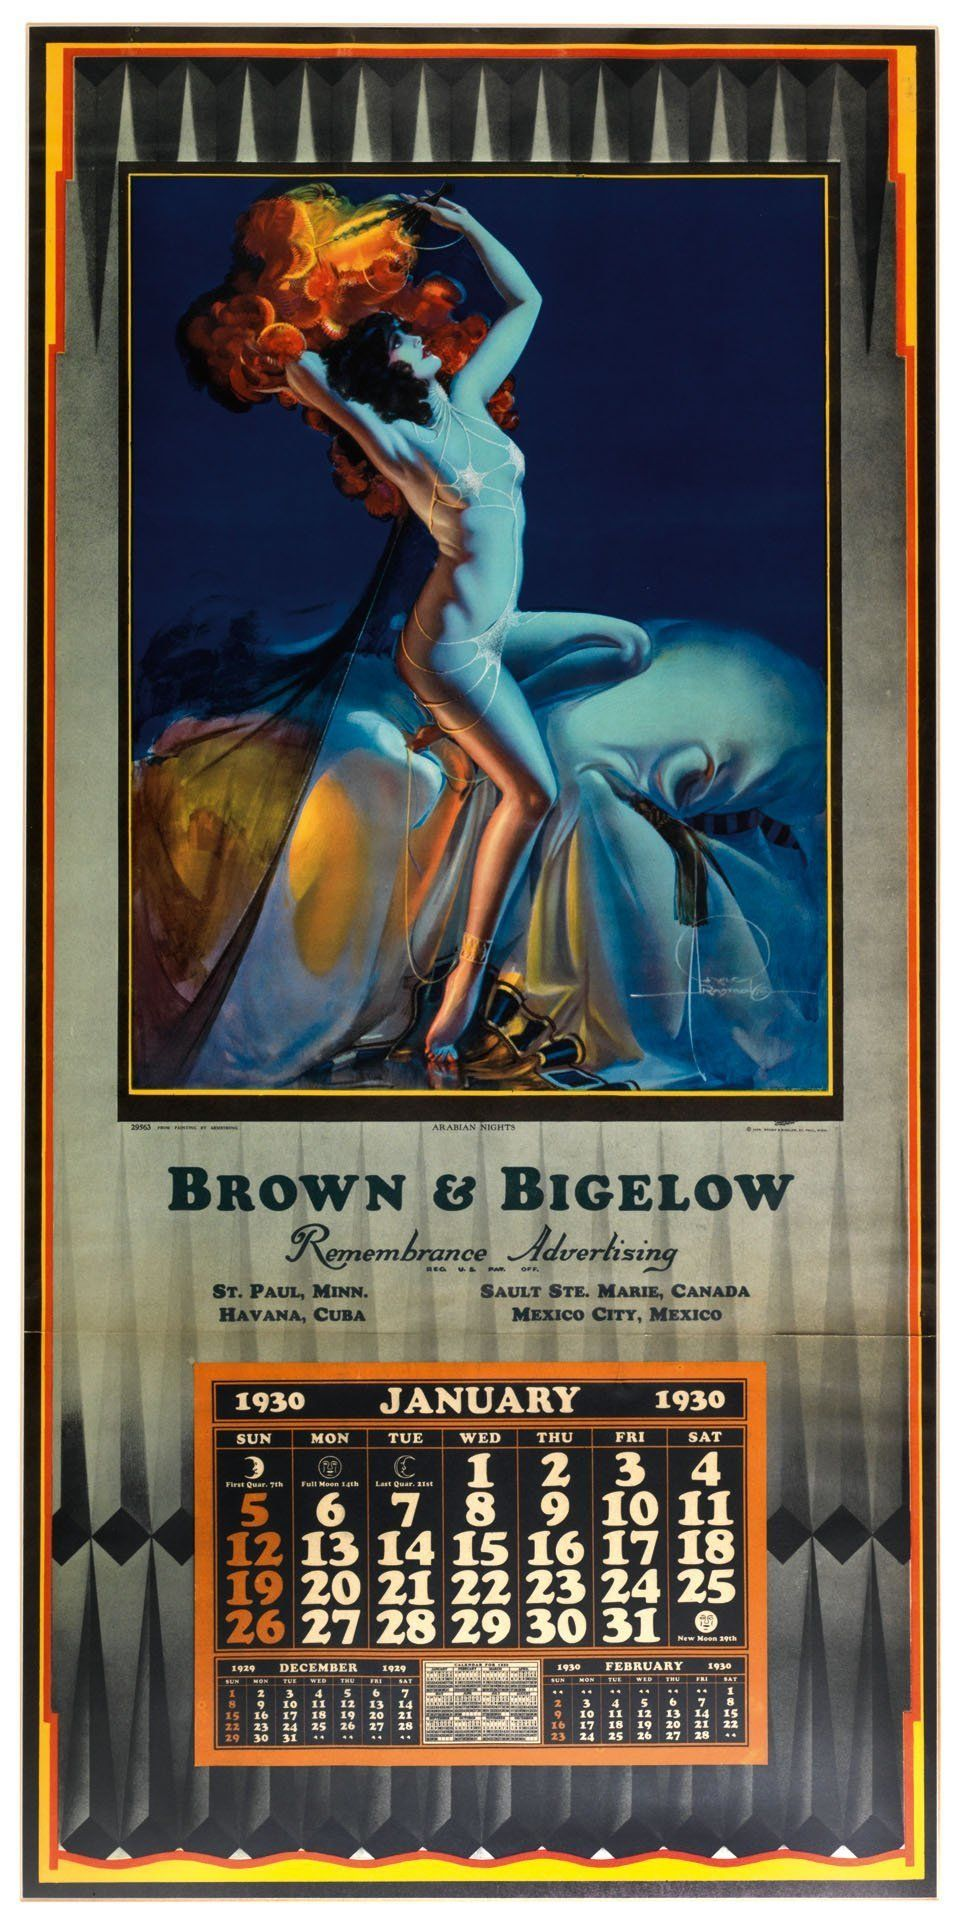 By Rolf Armstrong (c) Brown & Bigelow